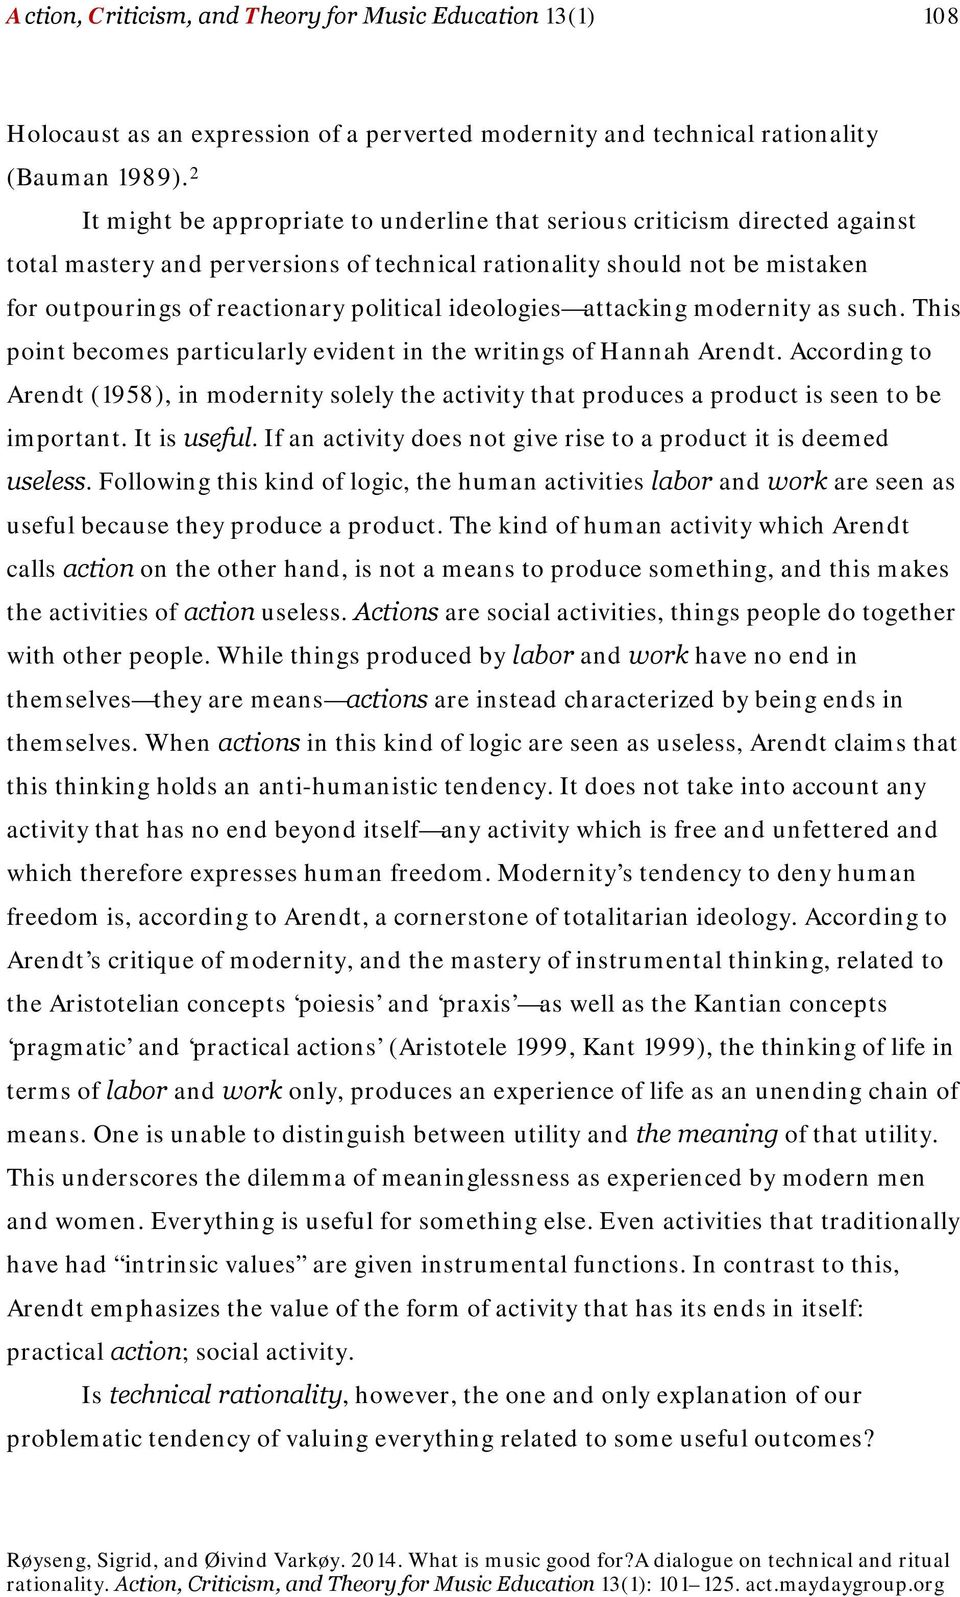 ideologies attacking modernity as such. This point becomes particularly evident in the writings of Hannah Arendt.